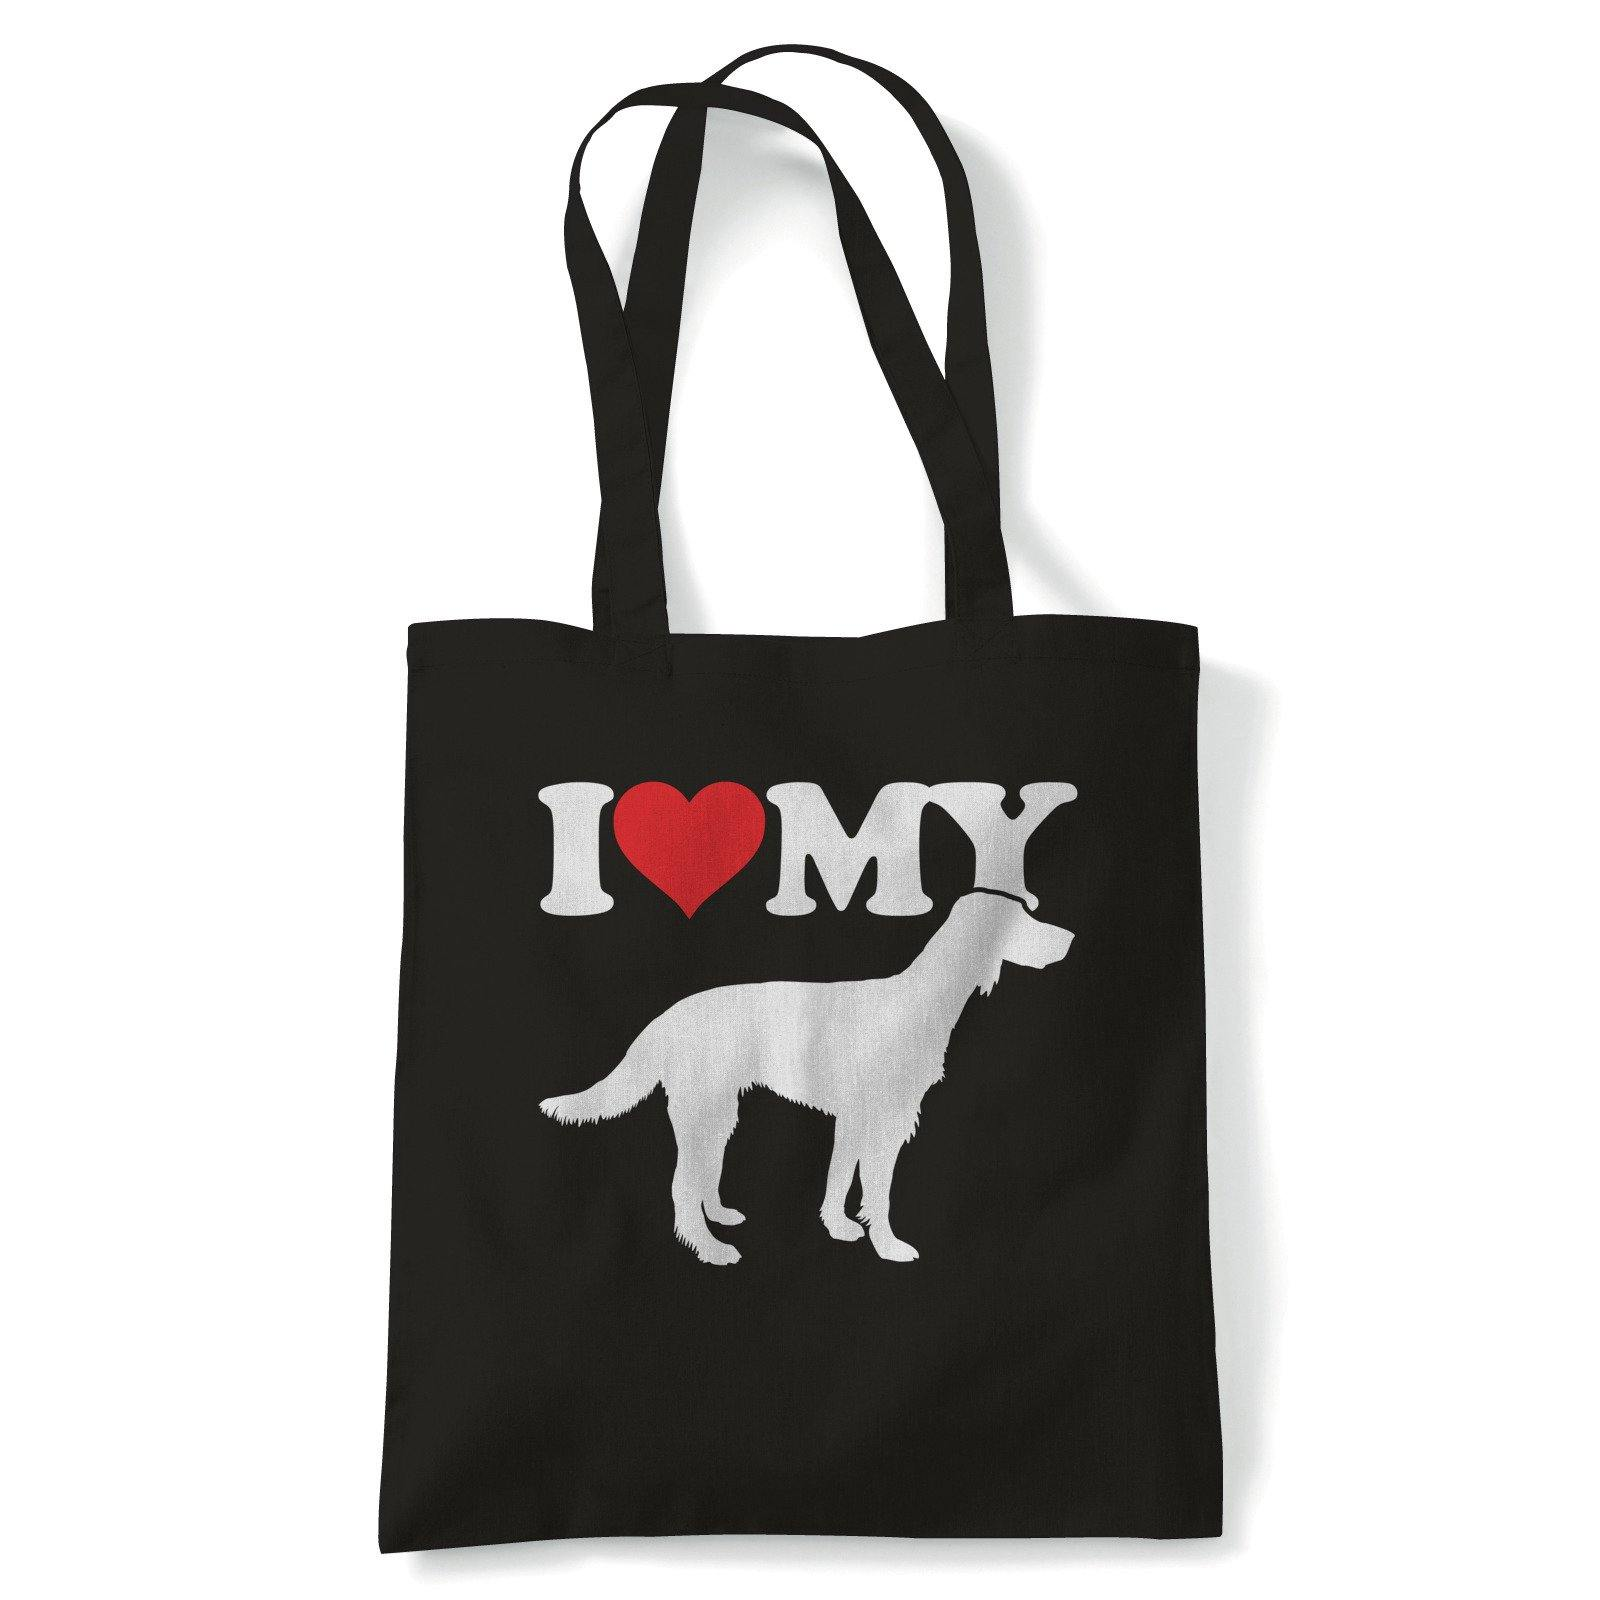 I Love My Irish Red Setter Tote | Dog Gift Fur Baby Lover Owner Mans Best Friend | Reusable Shopping Cotton Canvas Long Handled Natural Shopper Eco-Friendly Fashion